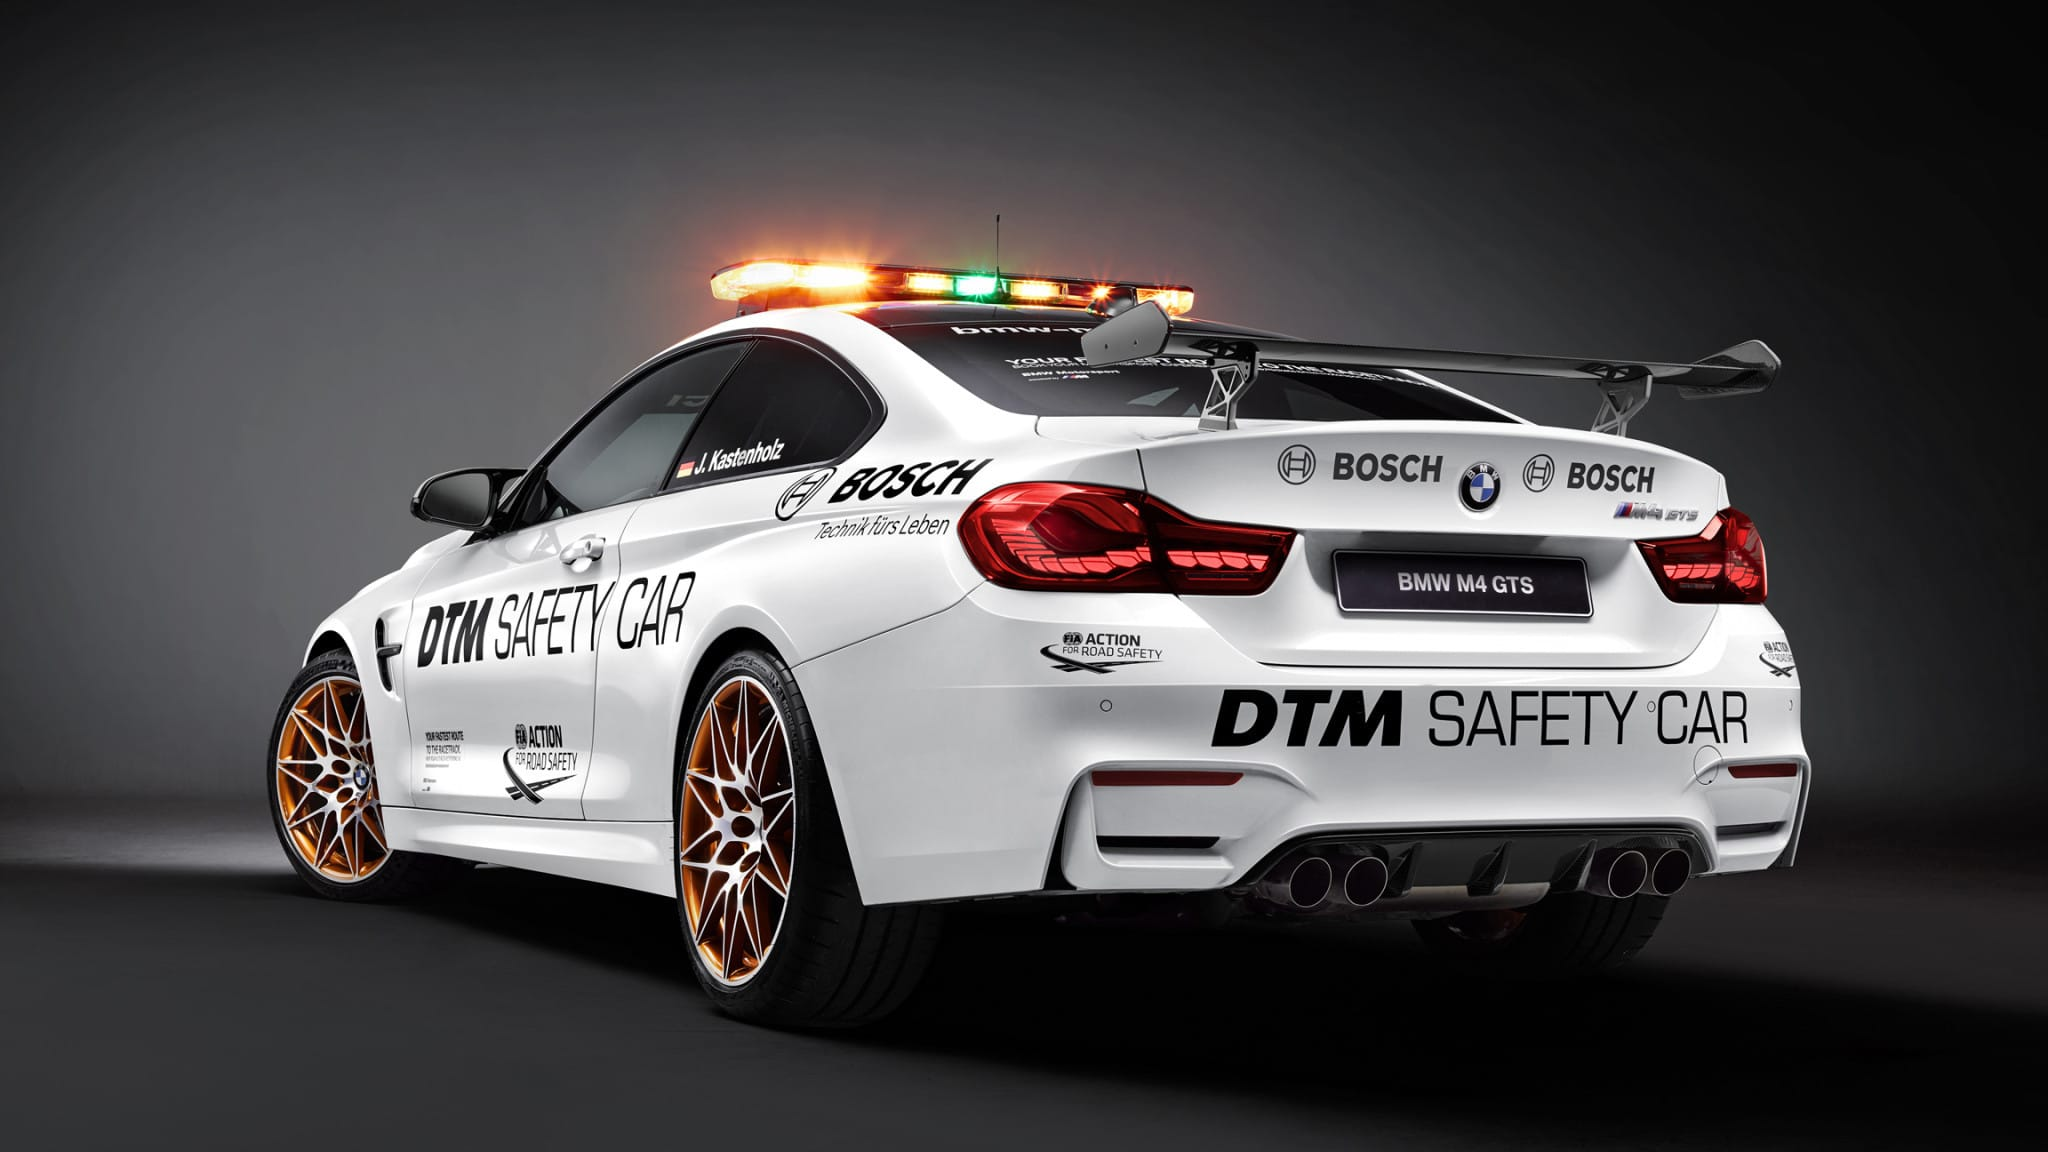 p90217501-highres-bmw-m4-gts-dtm-safet-1